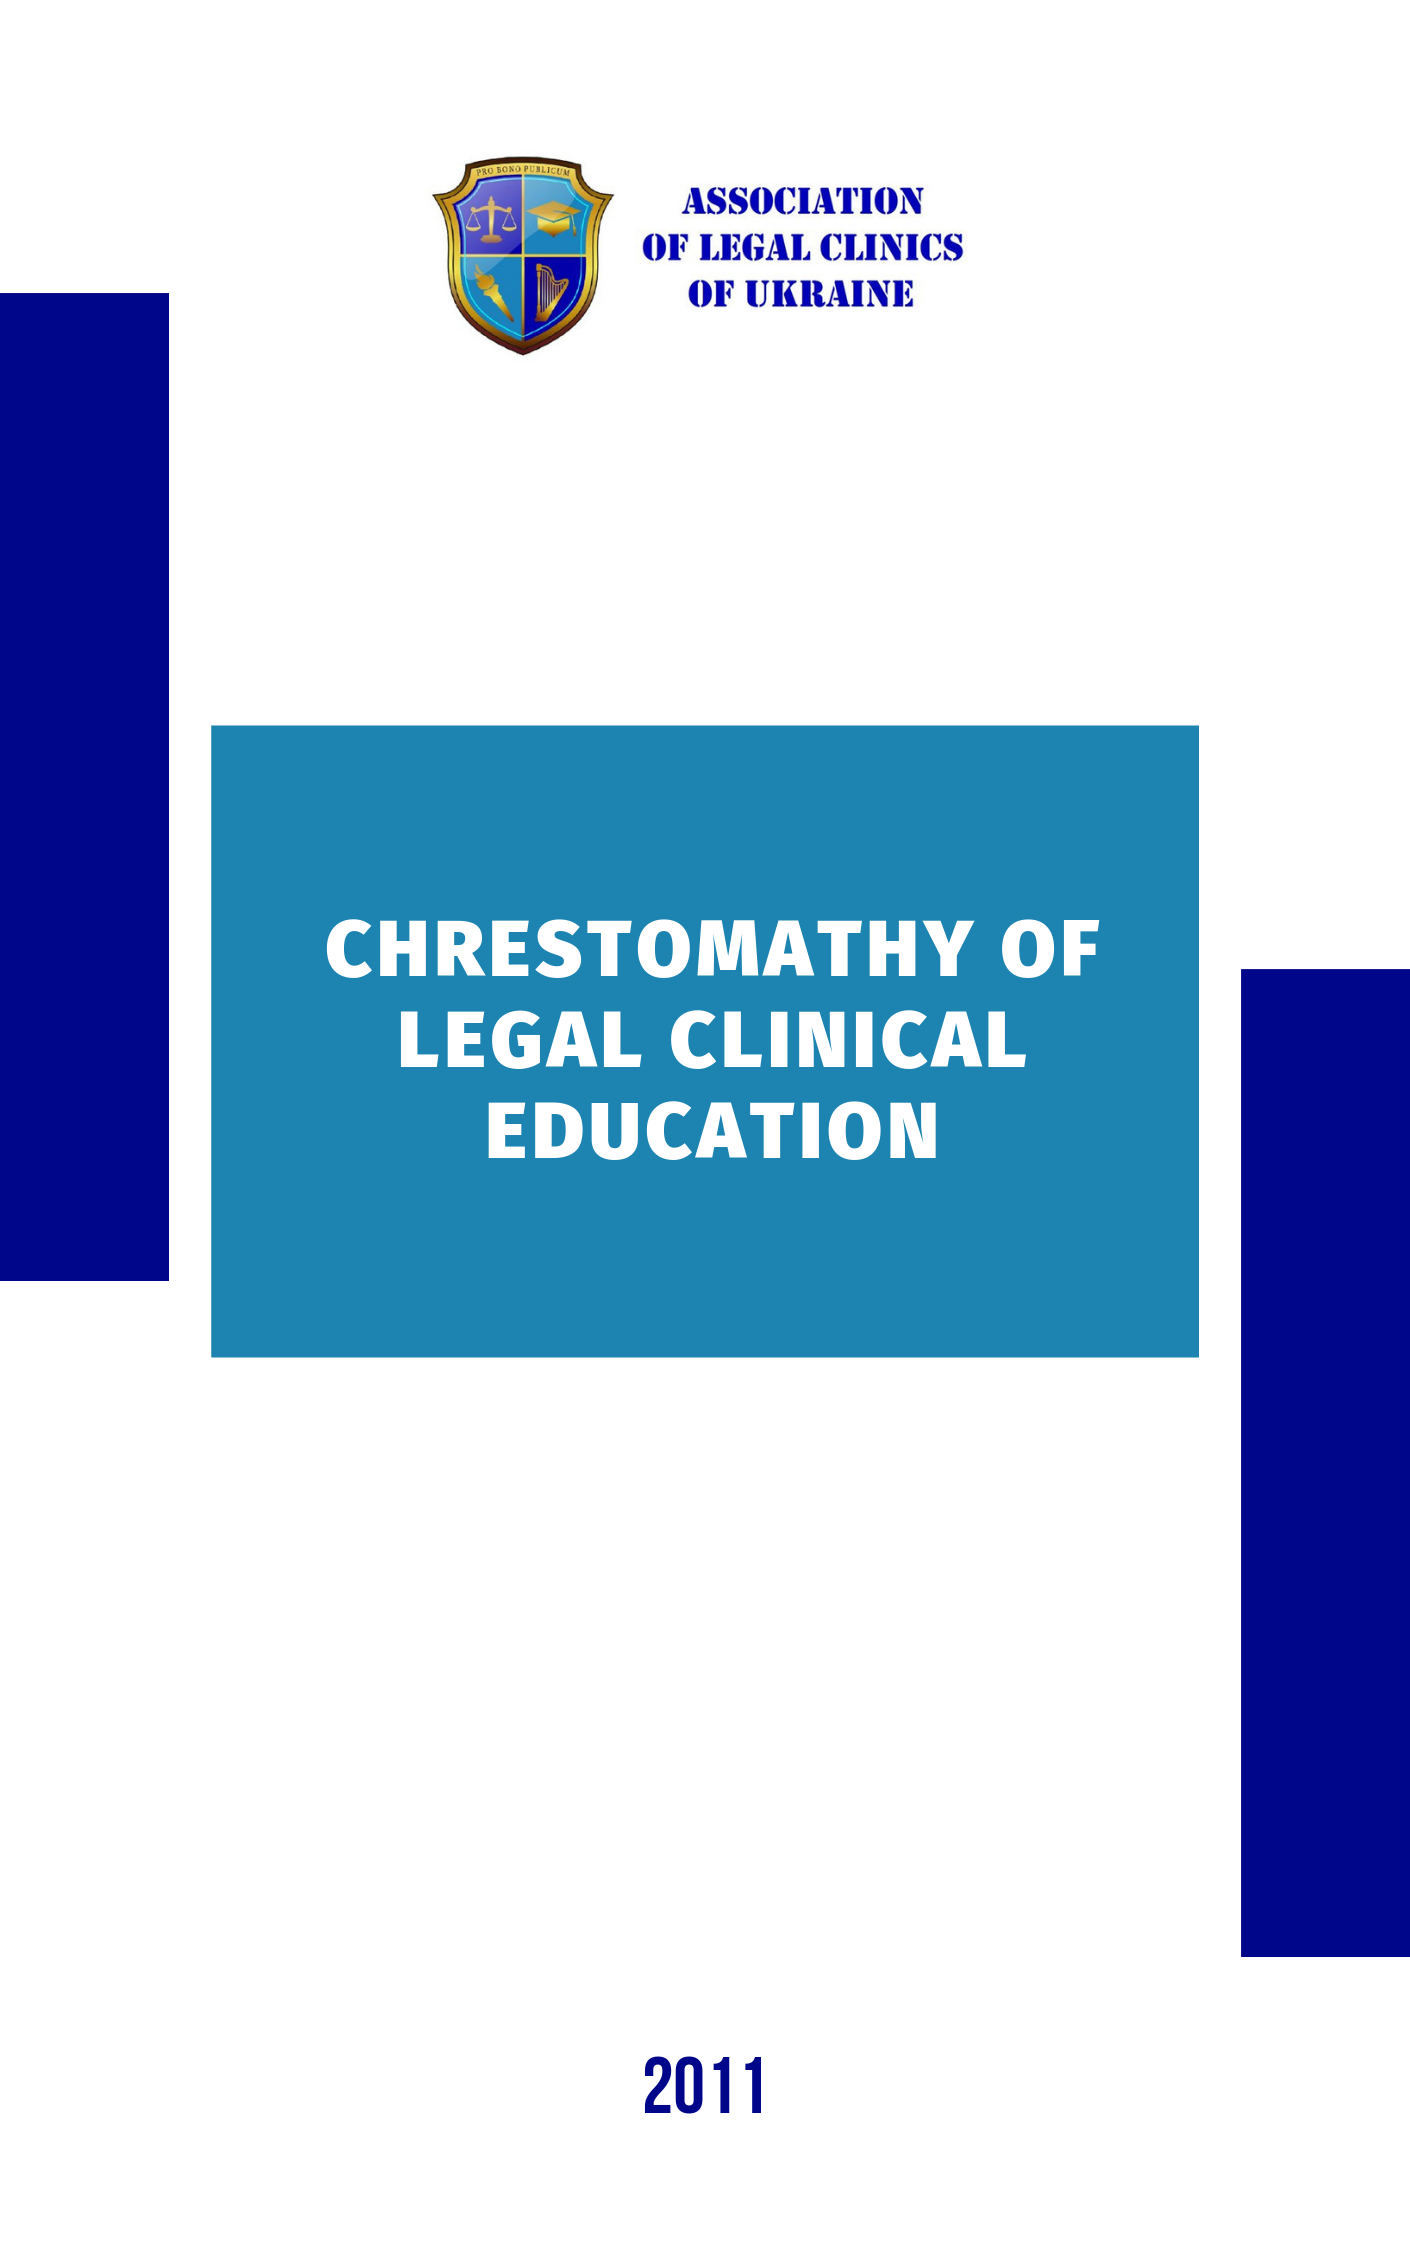 Chrestomathy of Legal Clinical Education (Ukrainian)